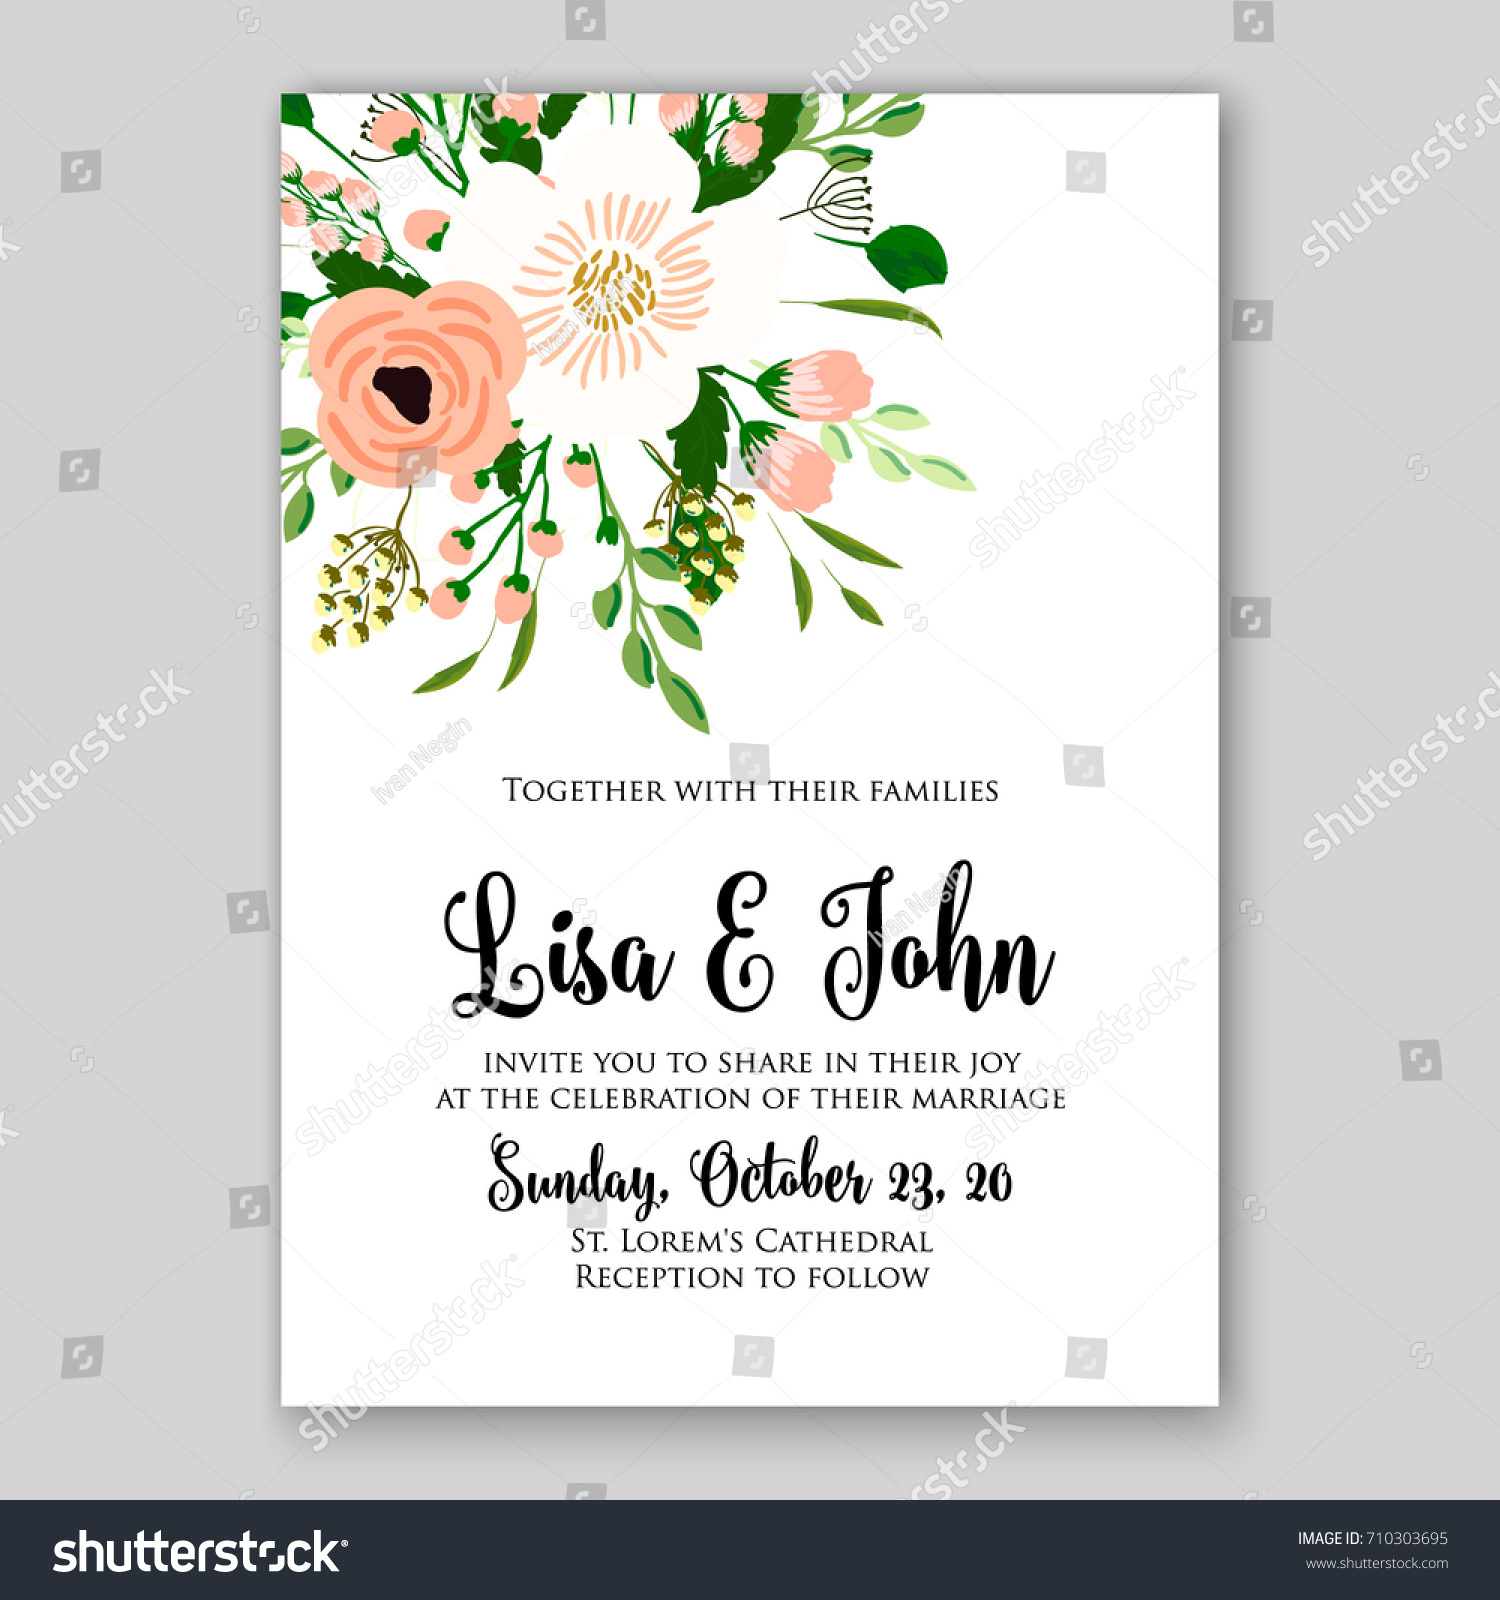 Romantic spring floral rustic flowers background stock vector romantic spring floral of rustic flowers background for wedding invitation vector template card cream rose stopboris Image collections